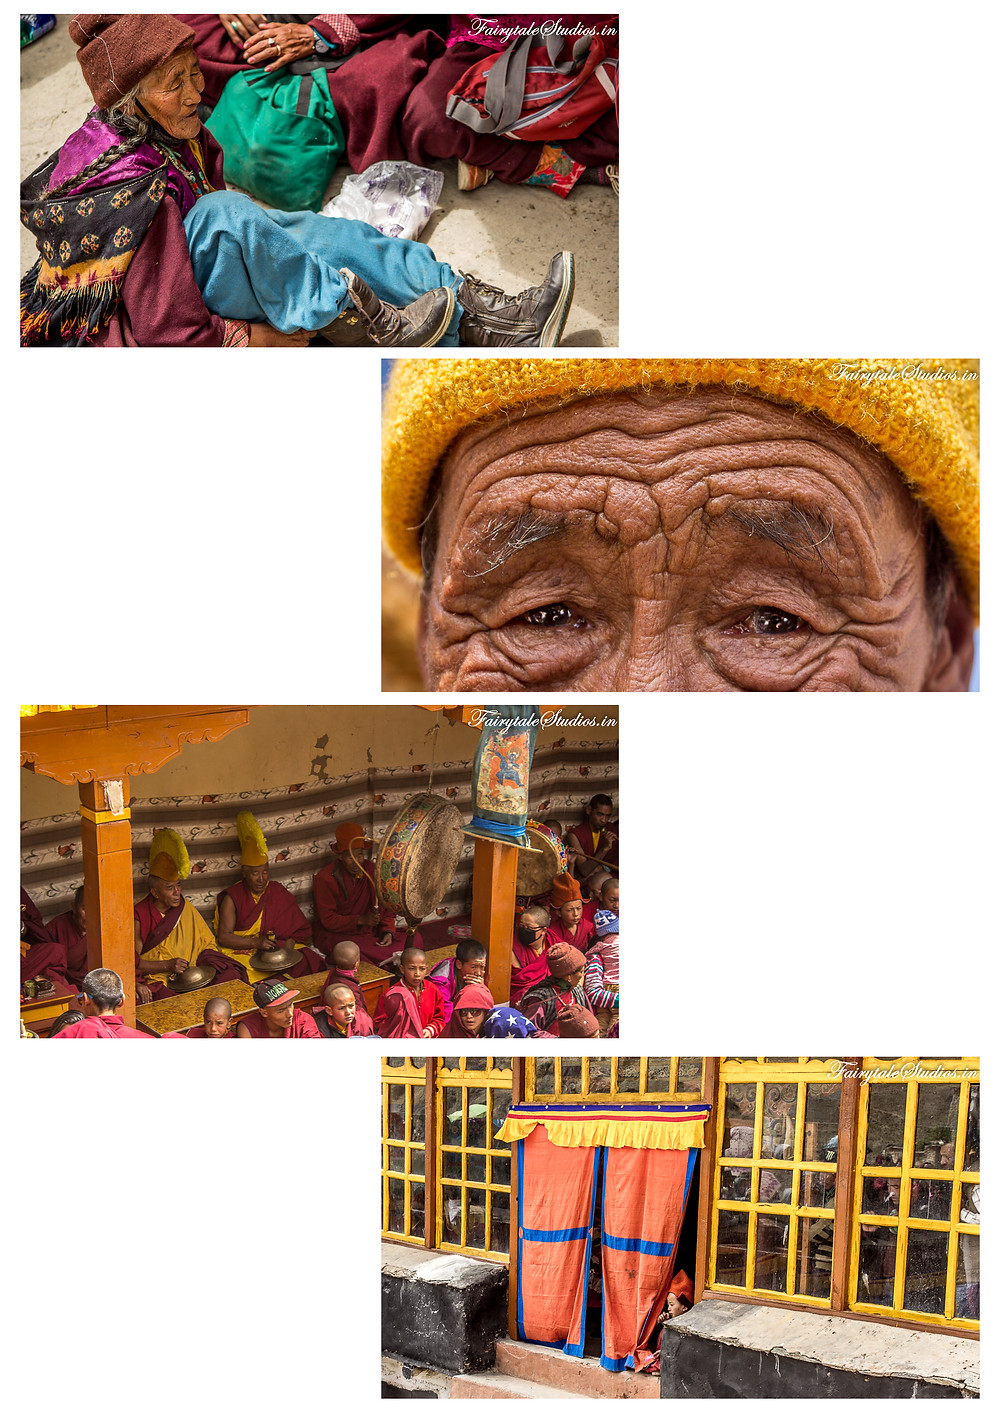 People eagerly waiting for Stongdey festival to begin (The Zanskar Odyssey Travelogue)